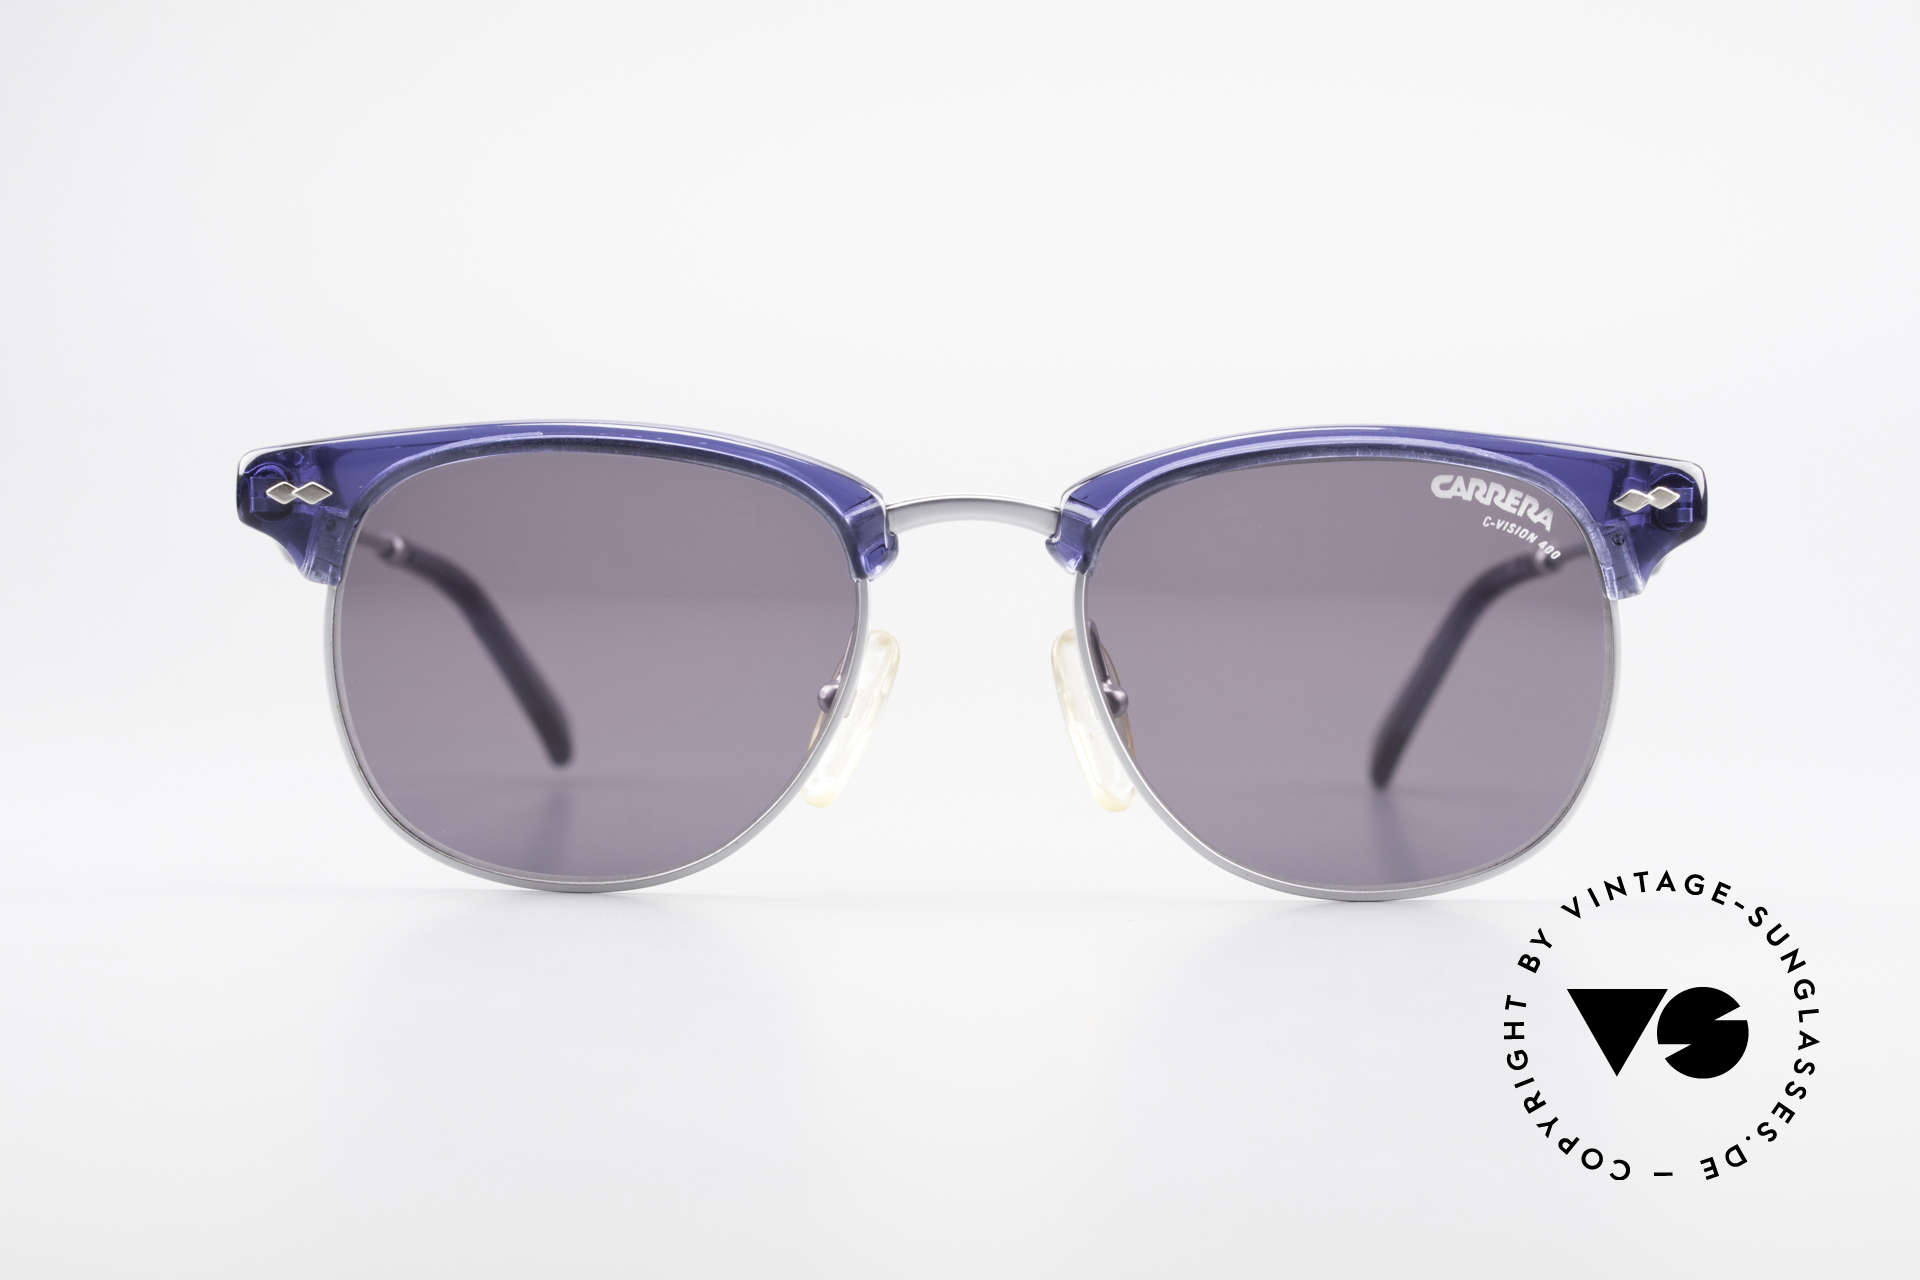 Carrera 5324 Vintage Panto Sunglasses 90s, elegant combination of colors, materials and shape, Made for Men